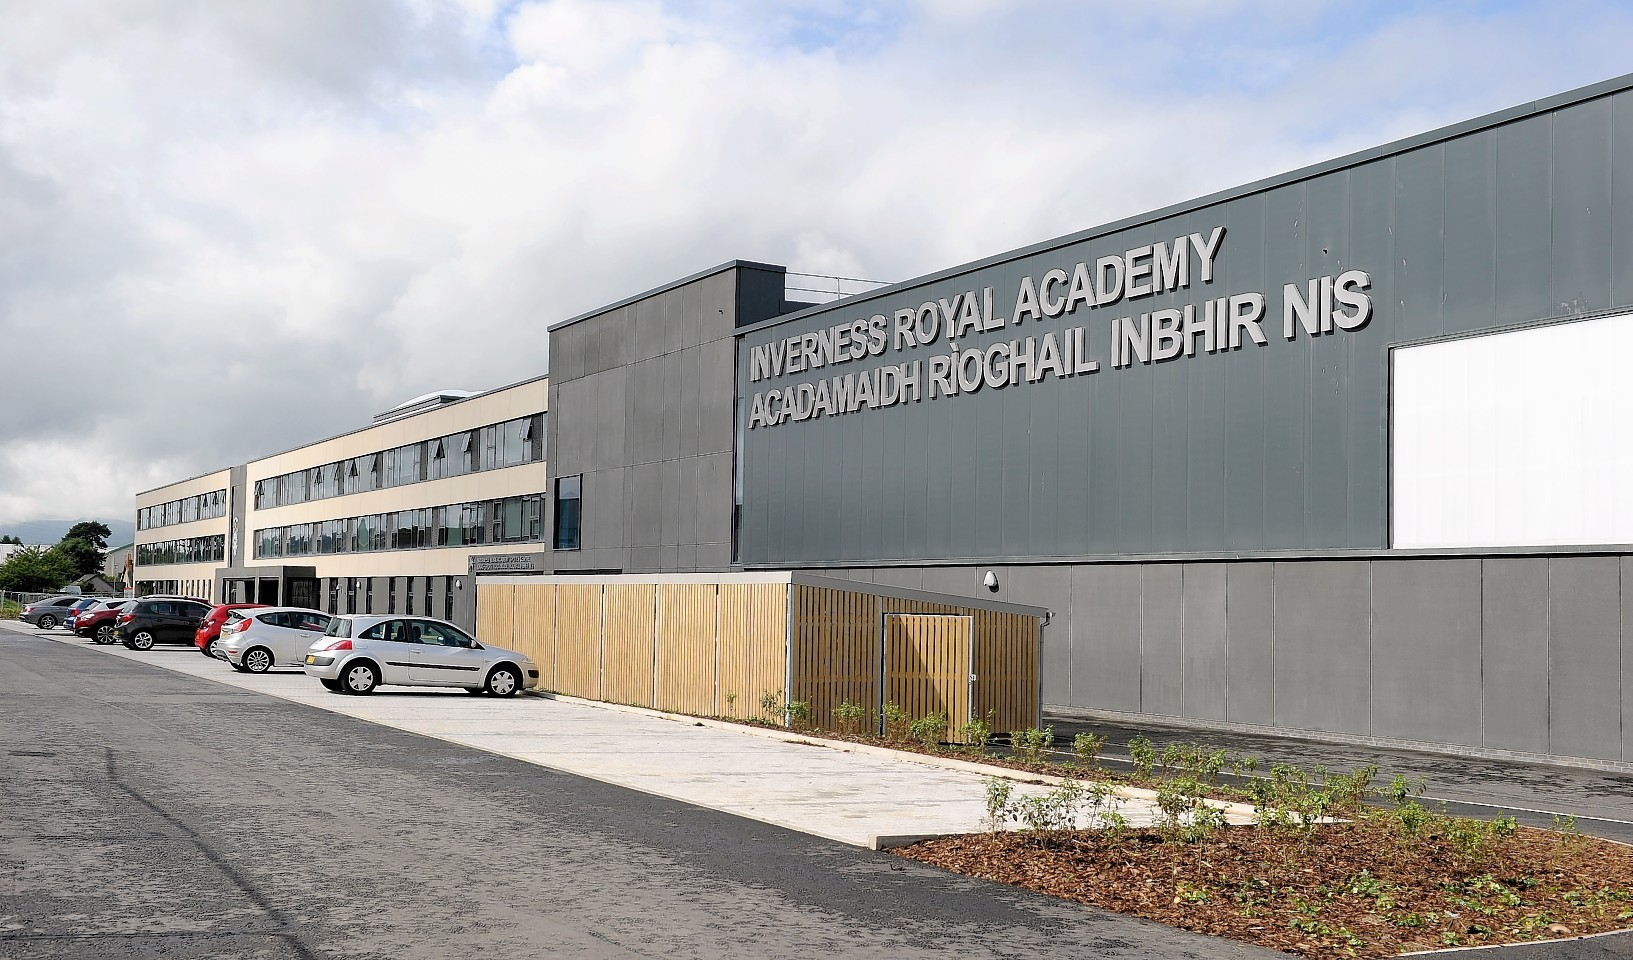 Traffic calming measures are being installed to help pupils walking to Inverness Royal Academy